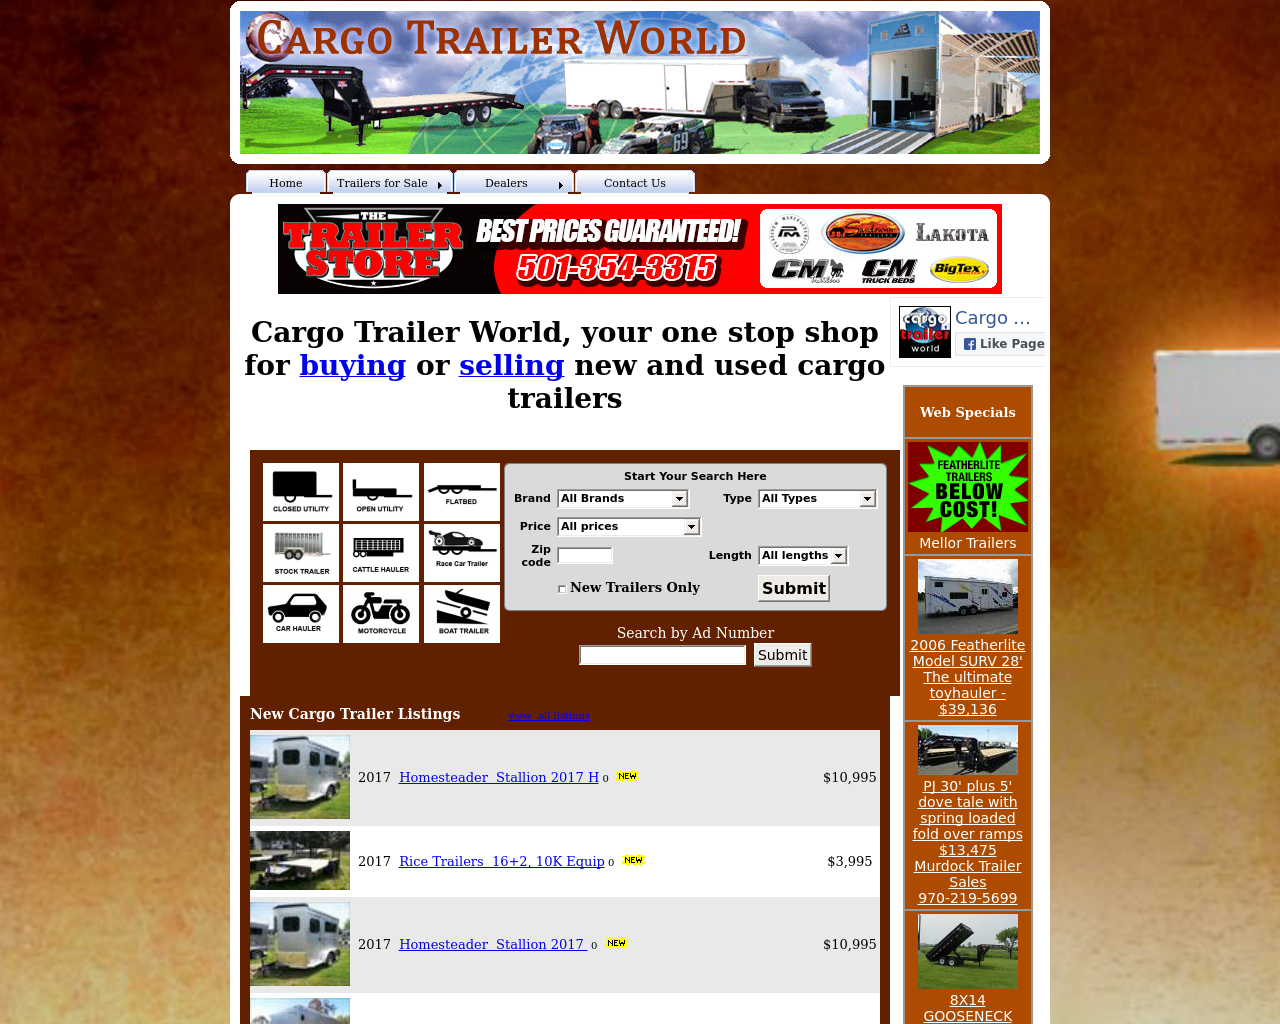 Cargo-Trailer-World-Advertising-Reviews-Pricing